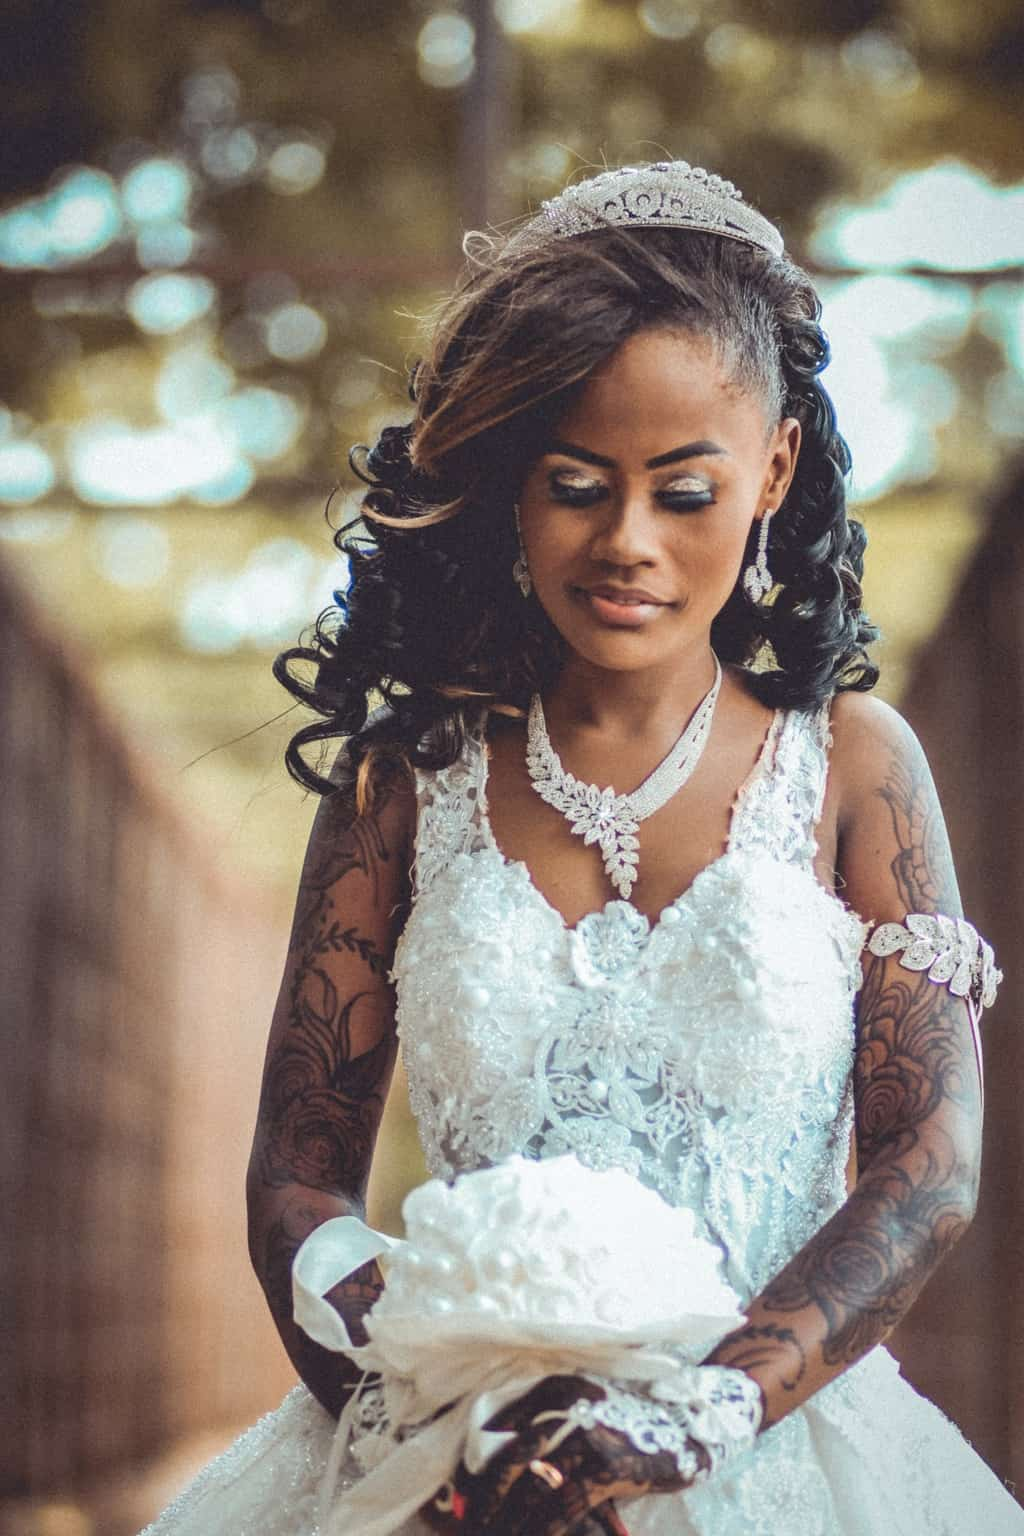 Women's White Floral Lace Wedding Gown